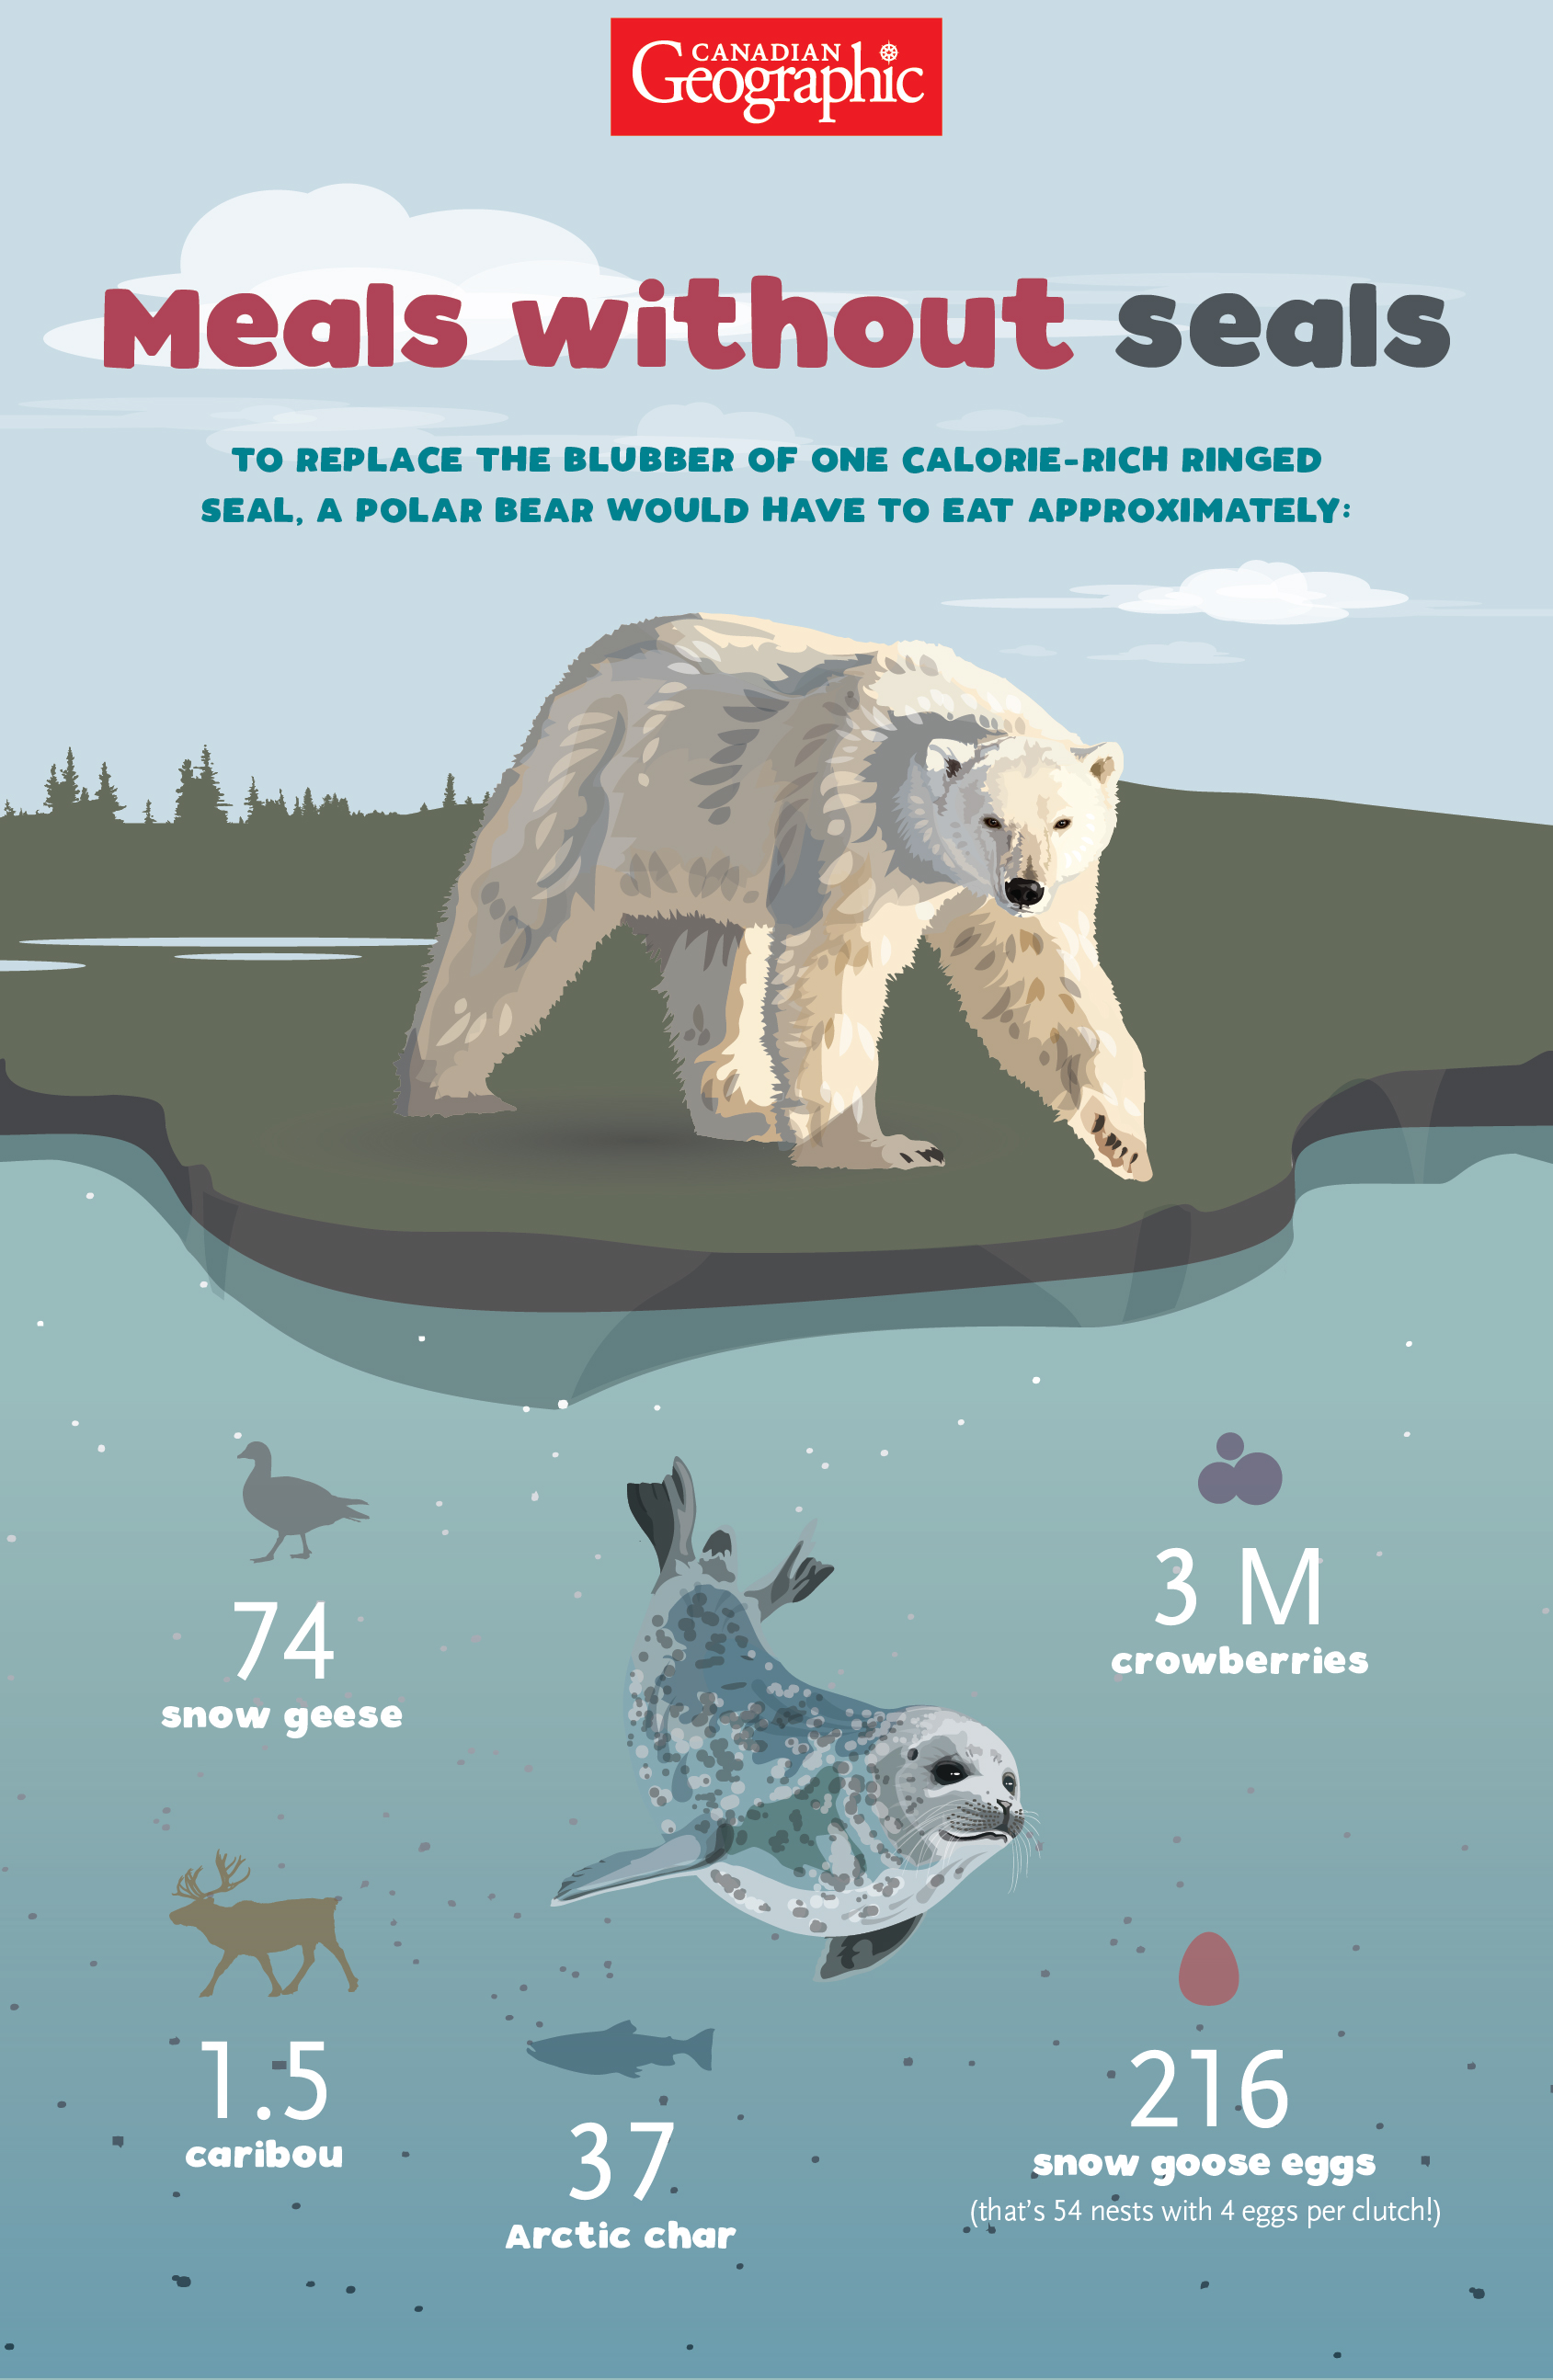 Infographic shows that polar bears would have to eat One and a half caribou  37 Arctic char  74 snow geese  216 snow goose eggs (that's 54 nests with 4 eggs per clutch!) OR 3 million crowberries to replace one calorie-rich ringed seal